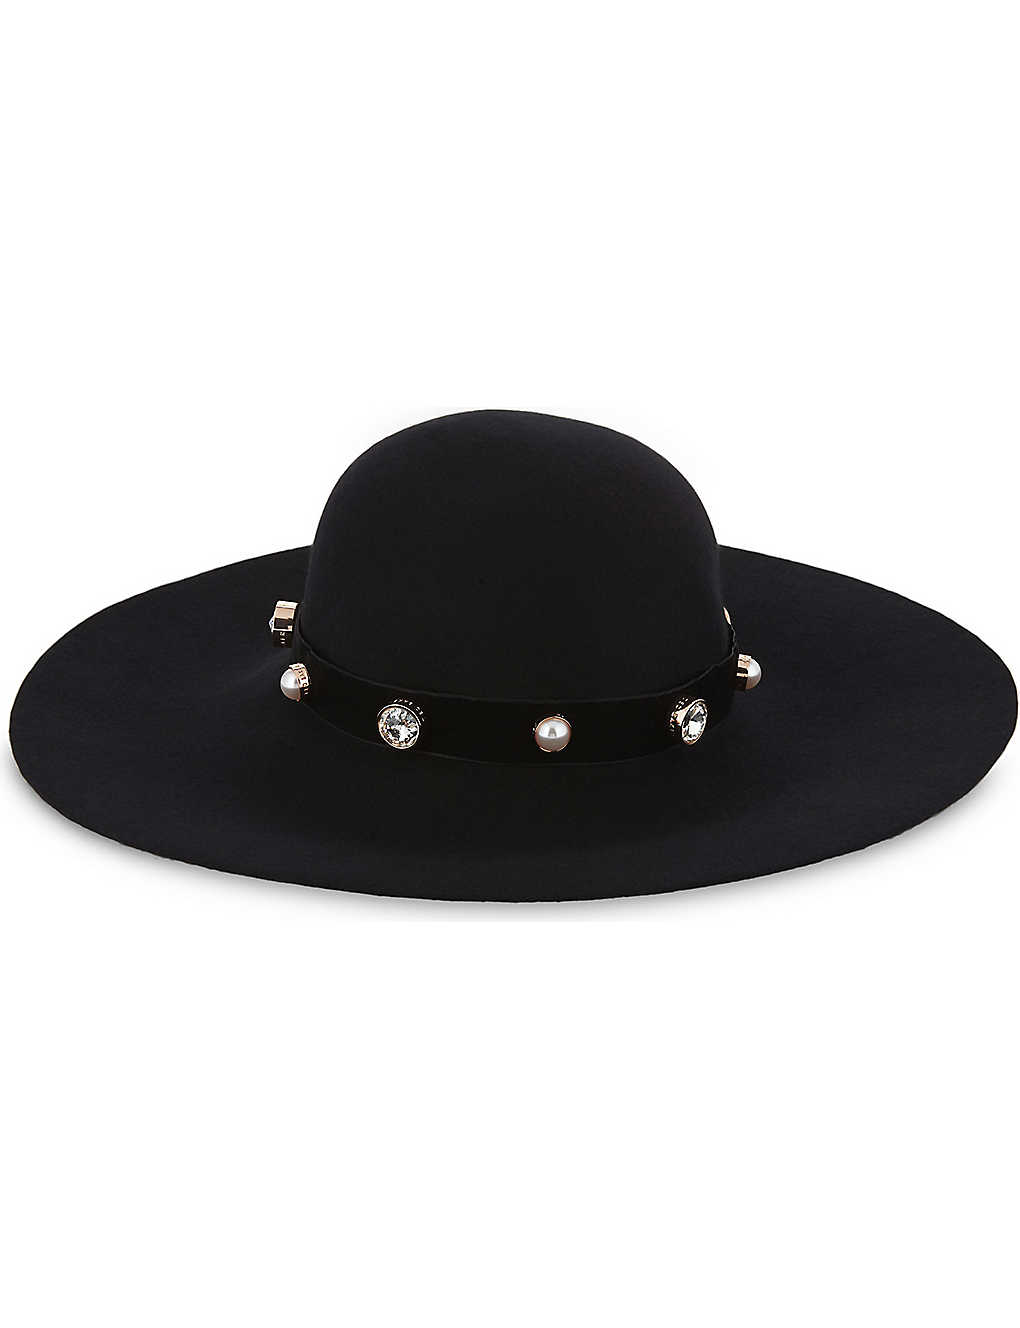 ef681e19f97e1 TED BAKER - Crystal and faux-pearl wool hat